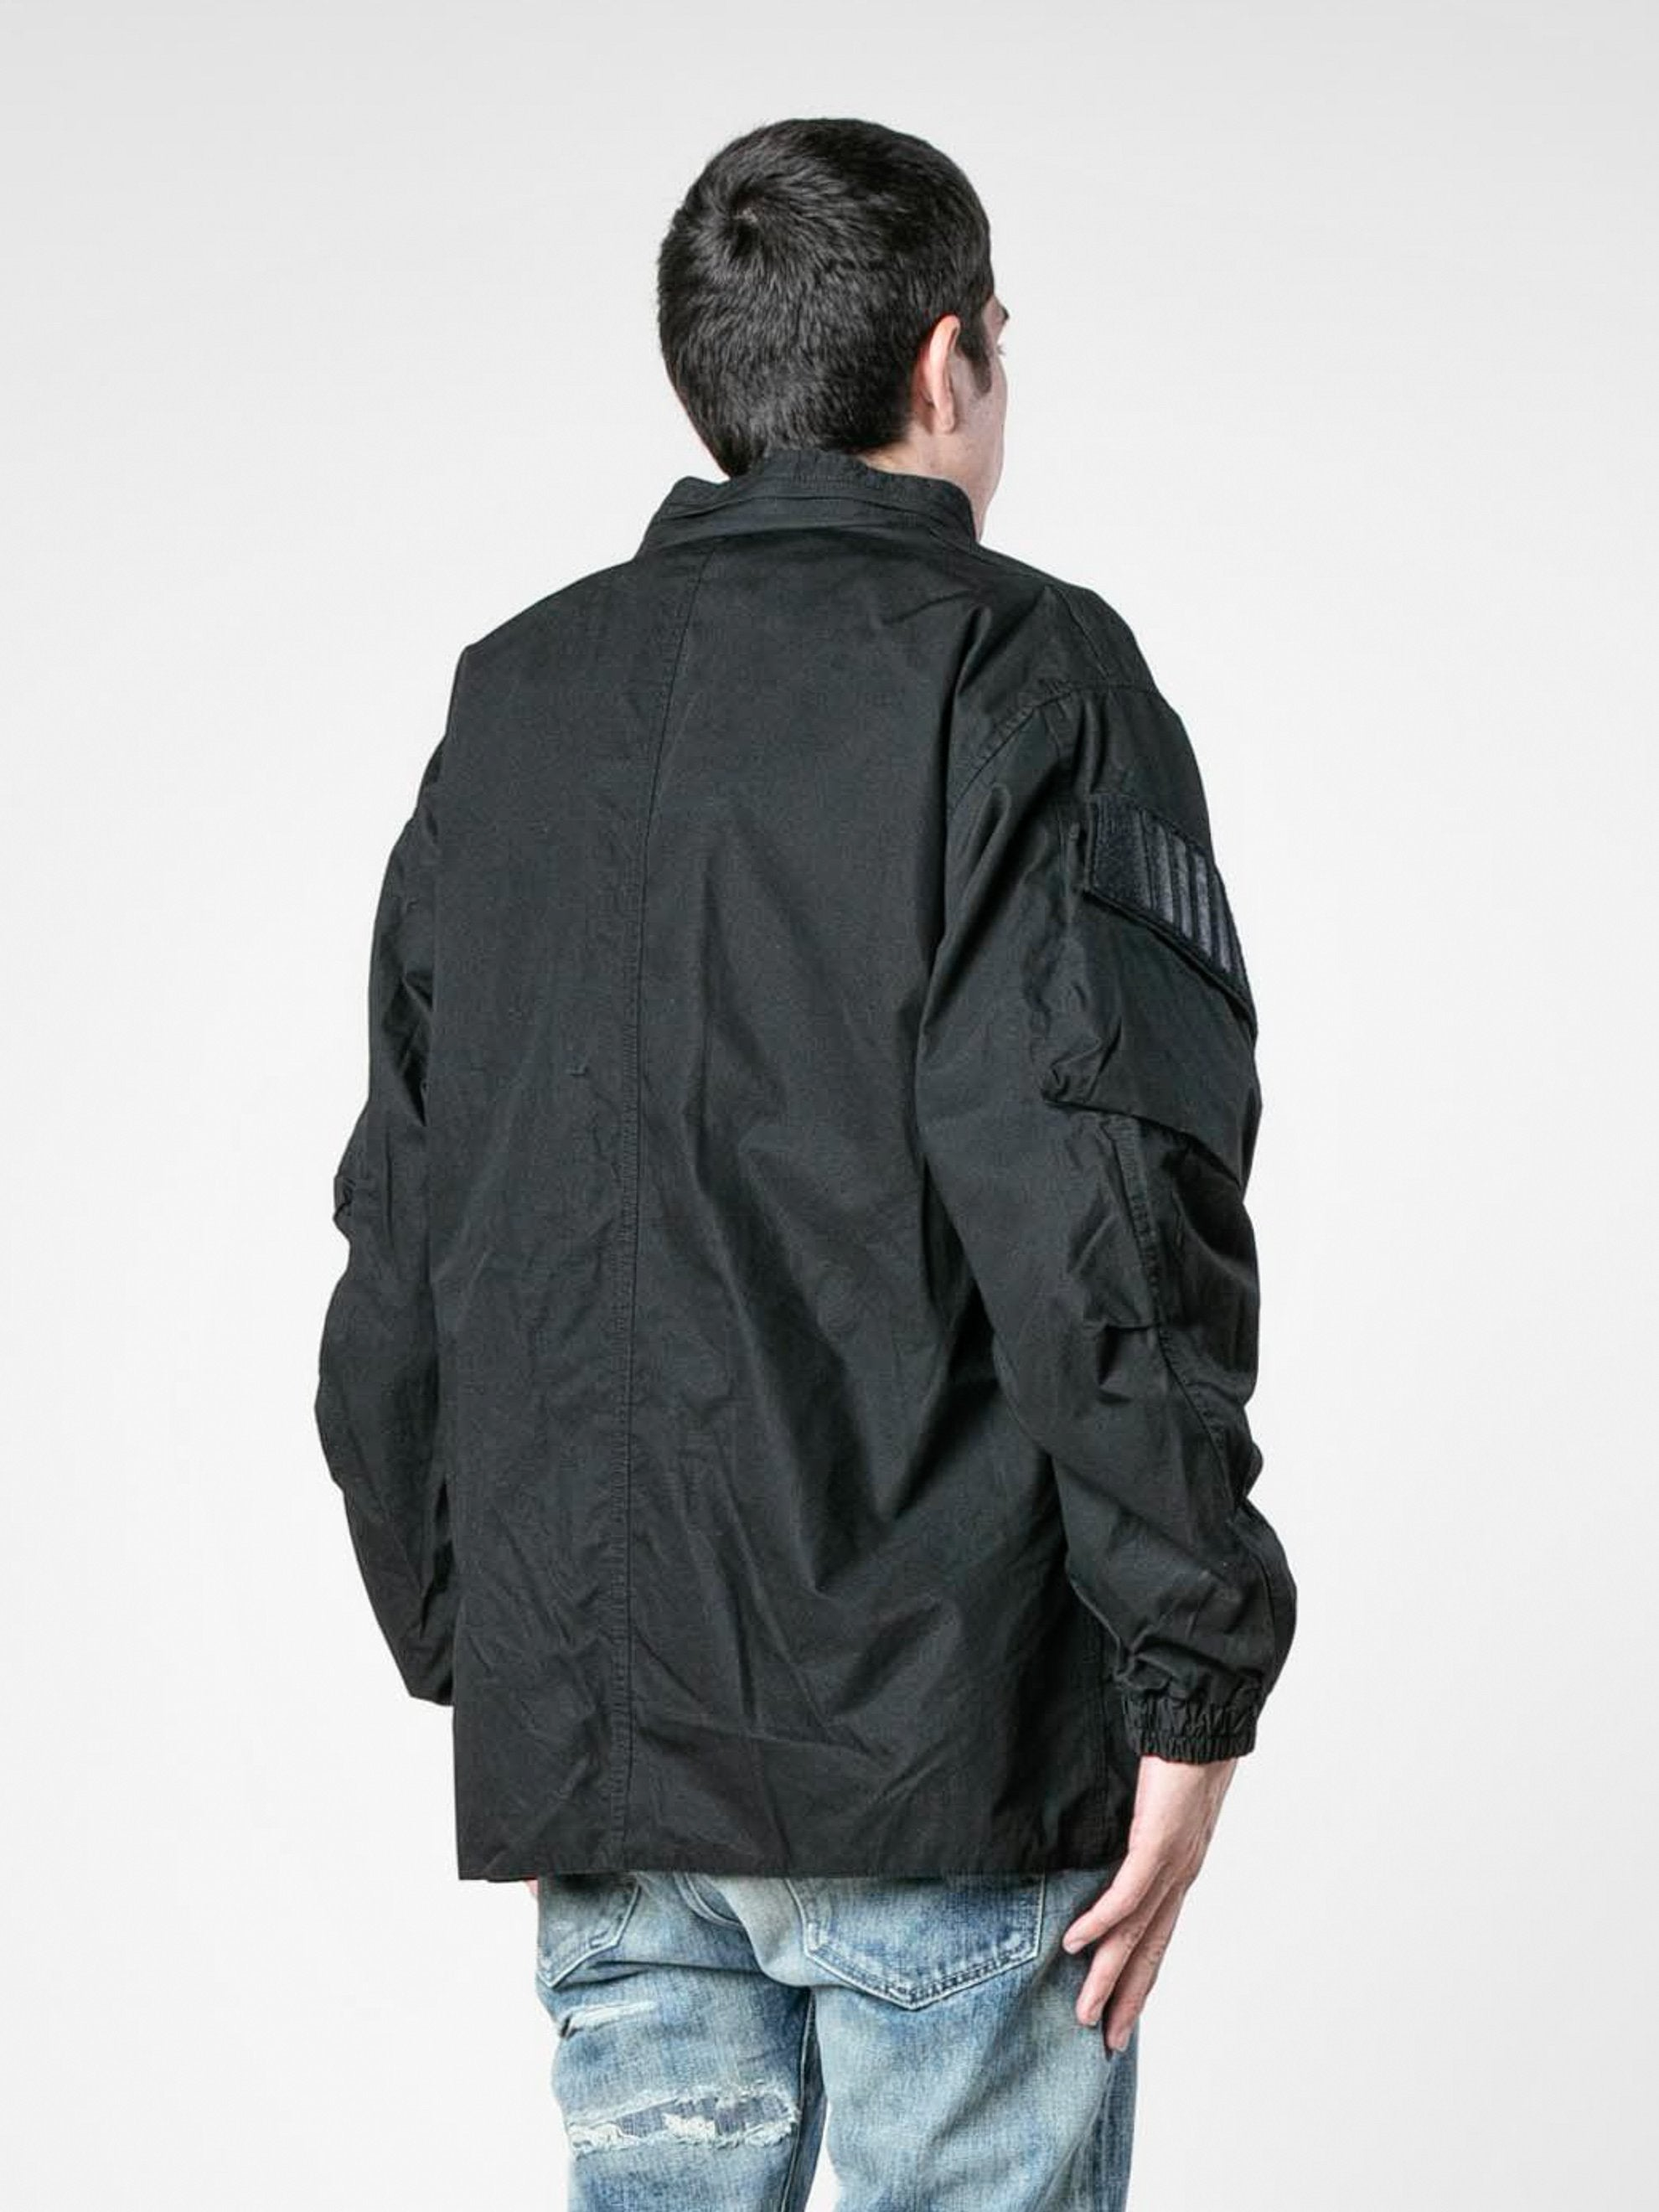 Black Modular / Jacket. Cotton. Weather 5